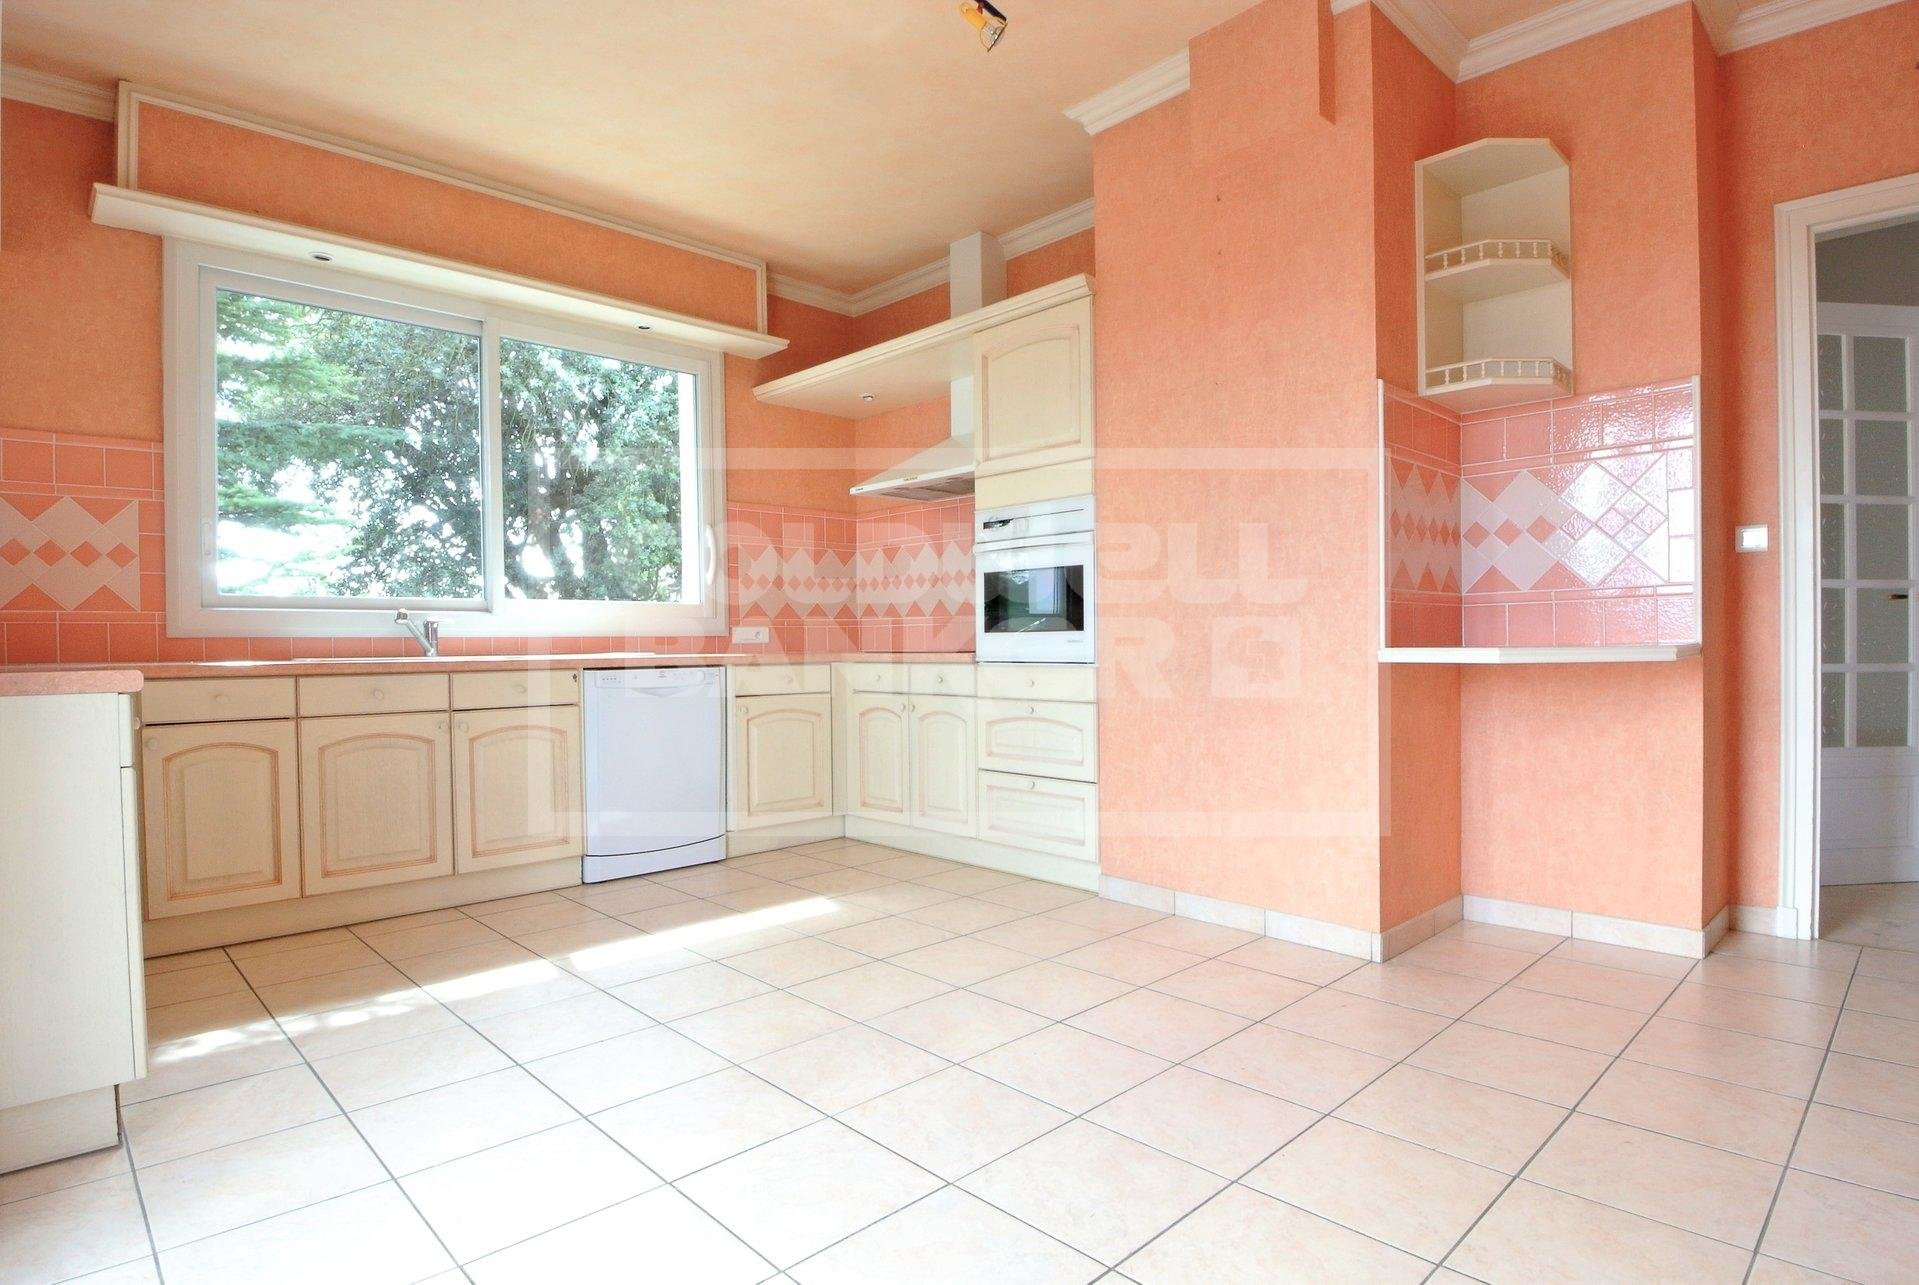 3 bedroom Appartment for Sale in Le Chay Royan